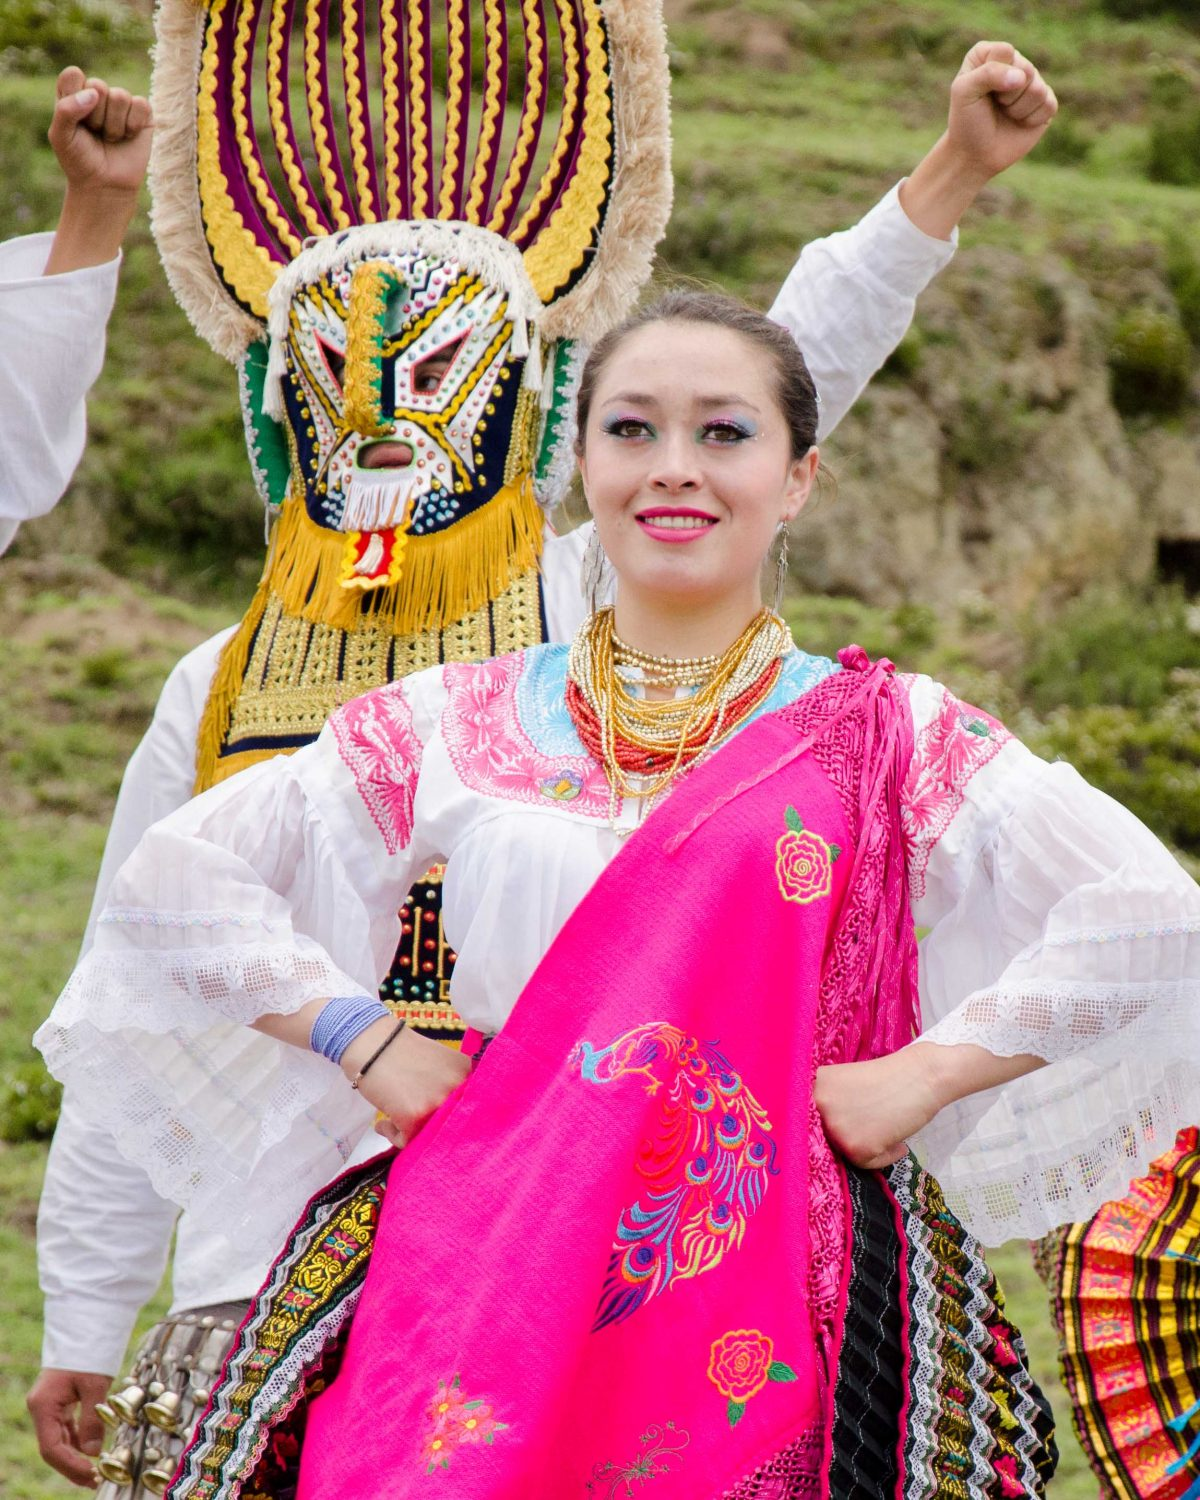 Dancer at Mushak Nina Celebration, Cochasquí, Ecuador | ©Angela Drake